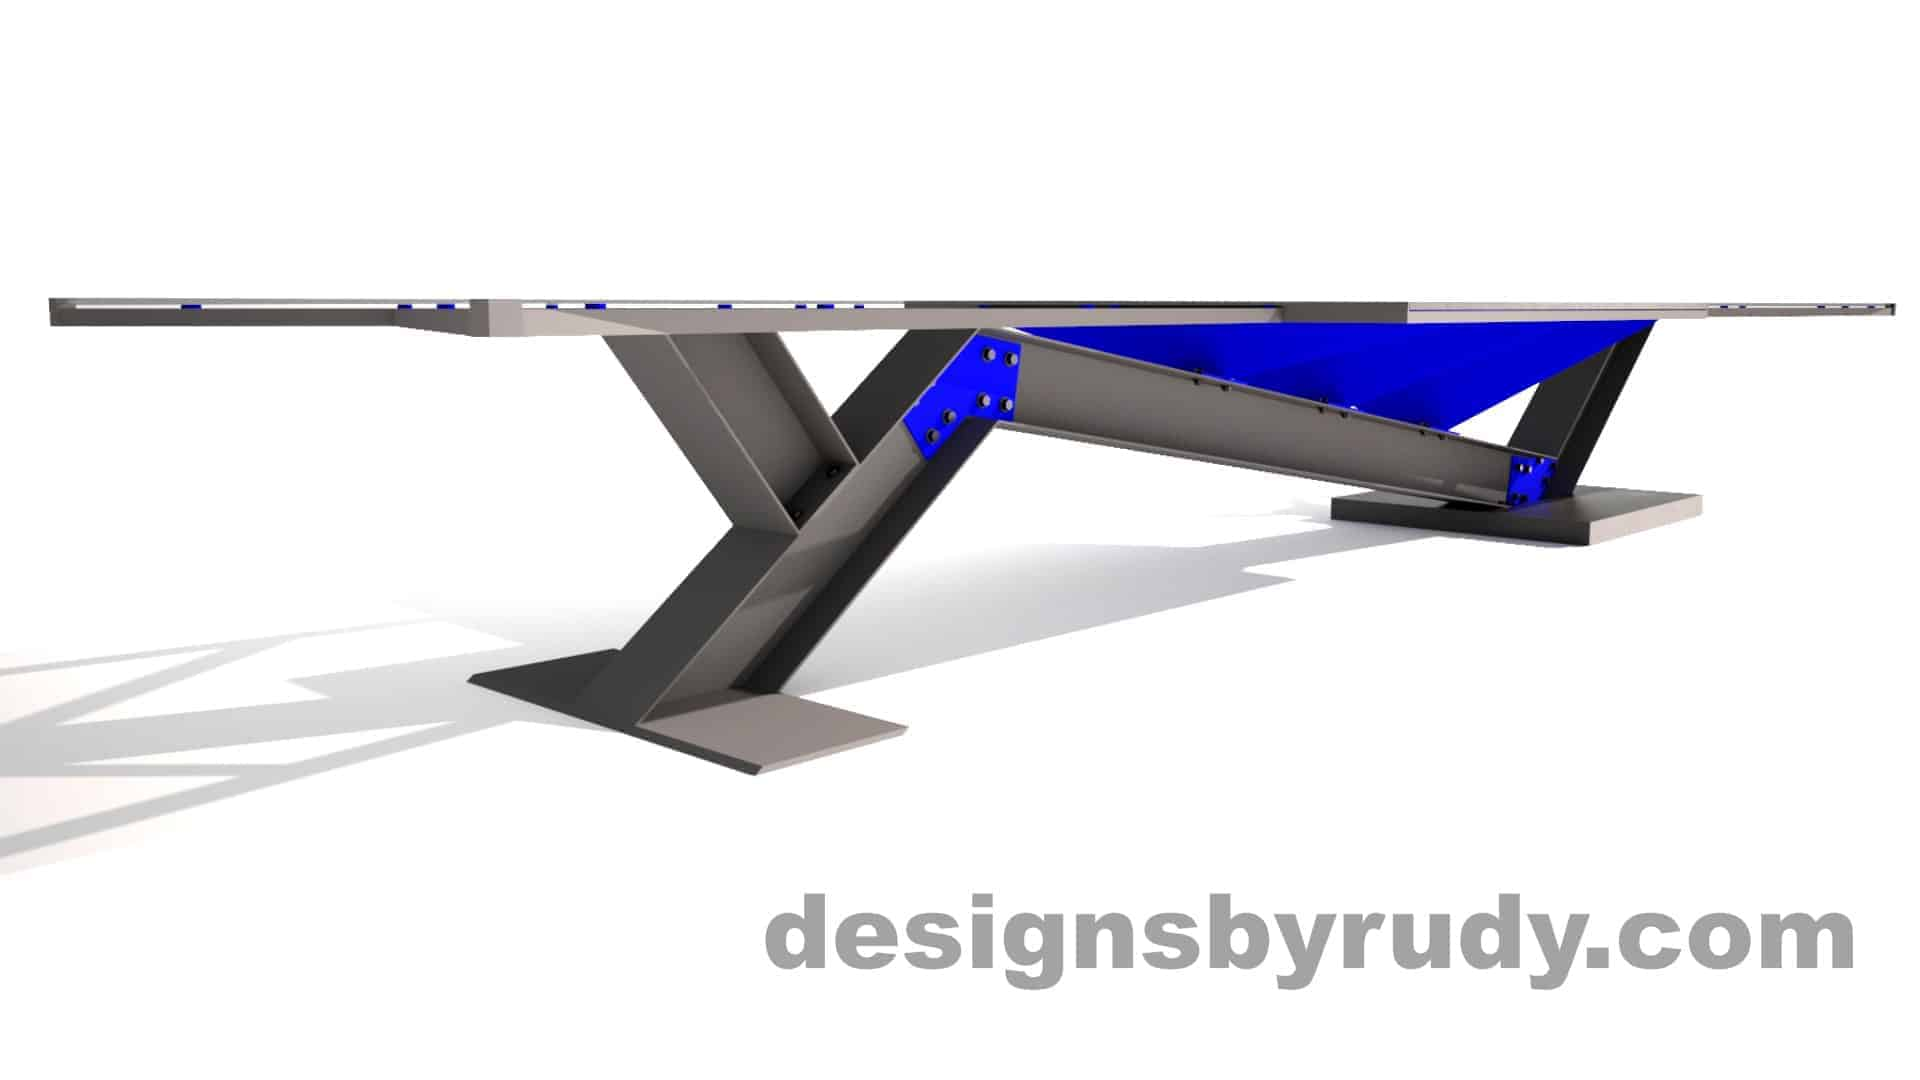 Concrete, steel, glass conference table modern design, full side angle view side 2